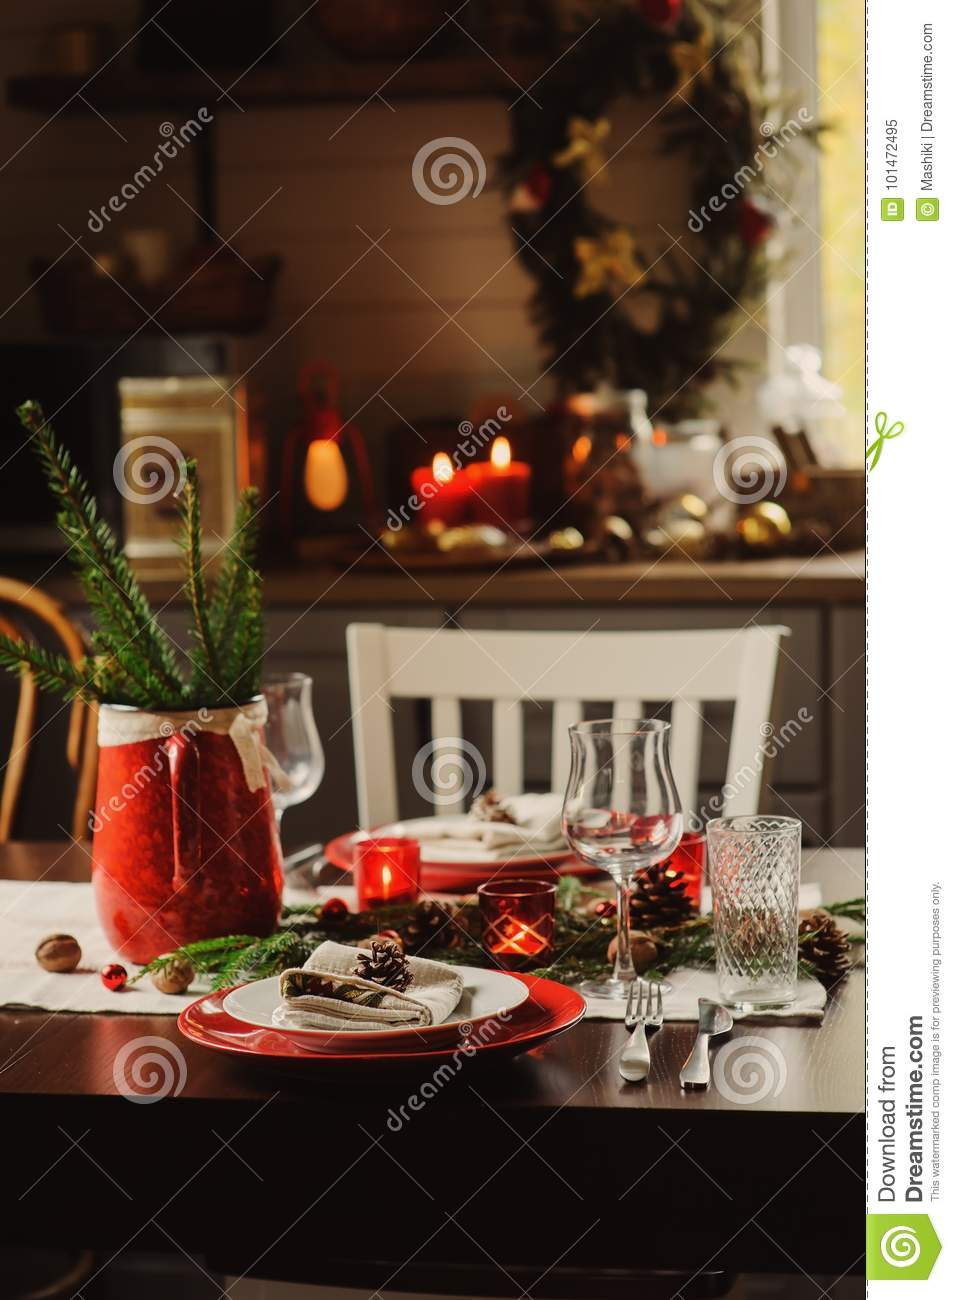 Festive table for the New Year of 2019 Pigs 19